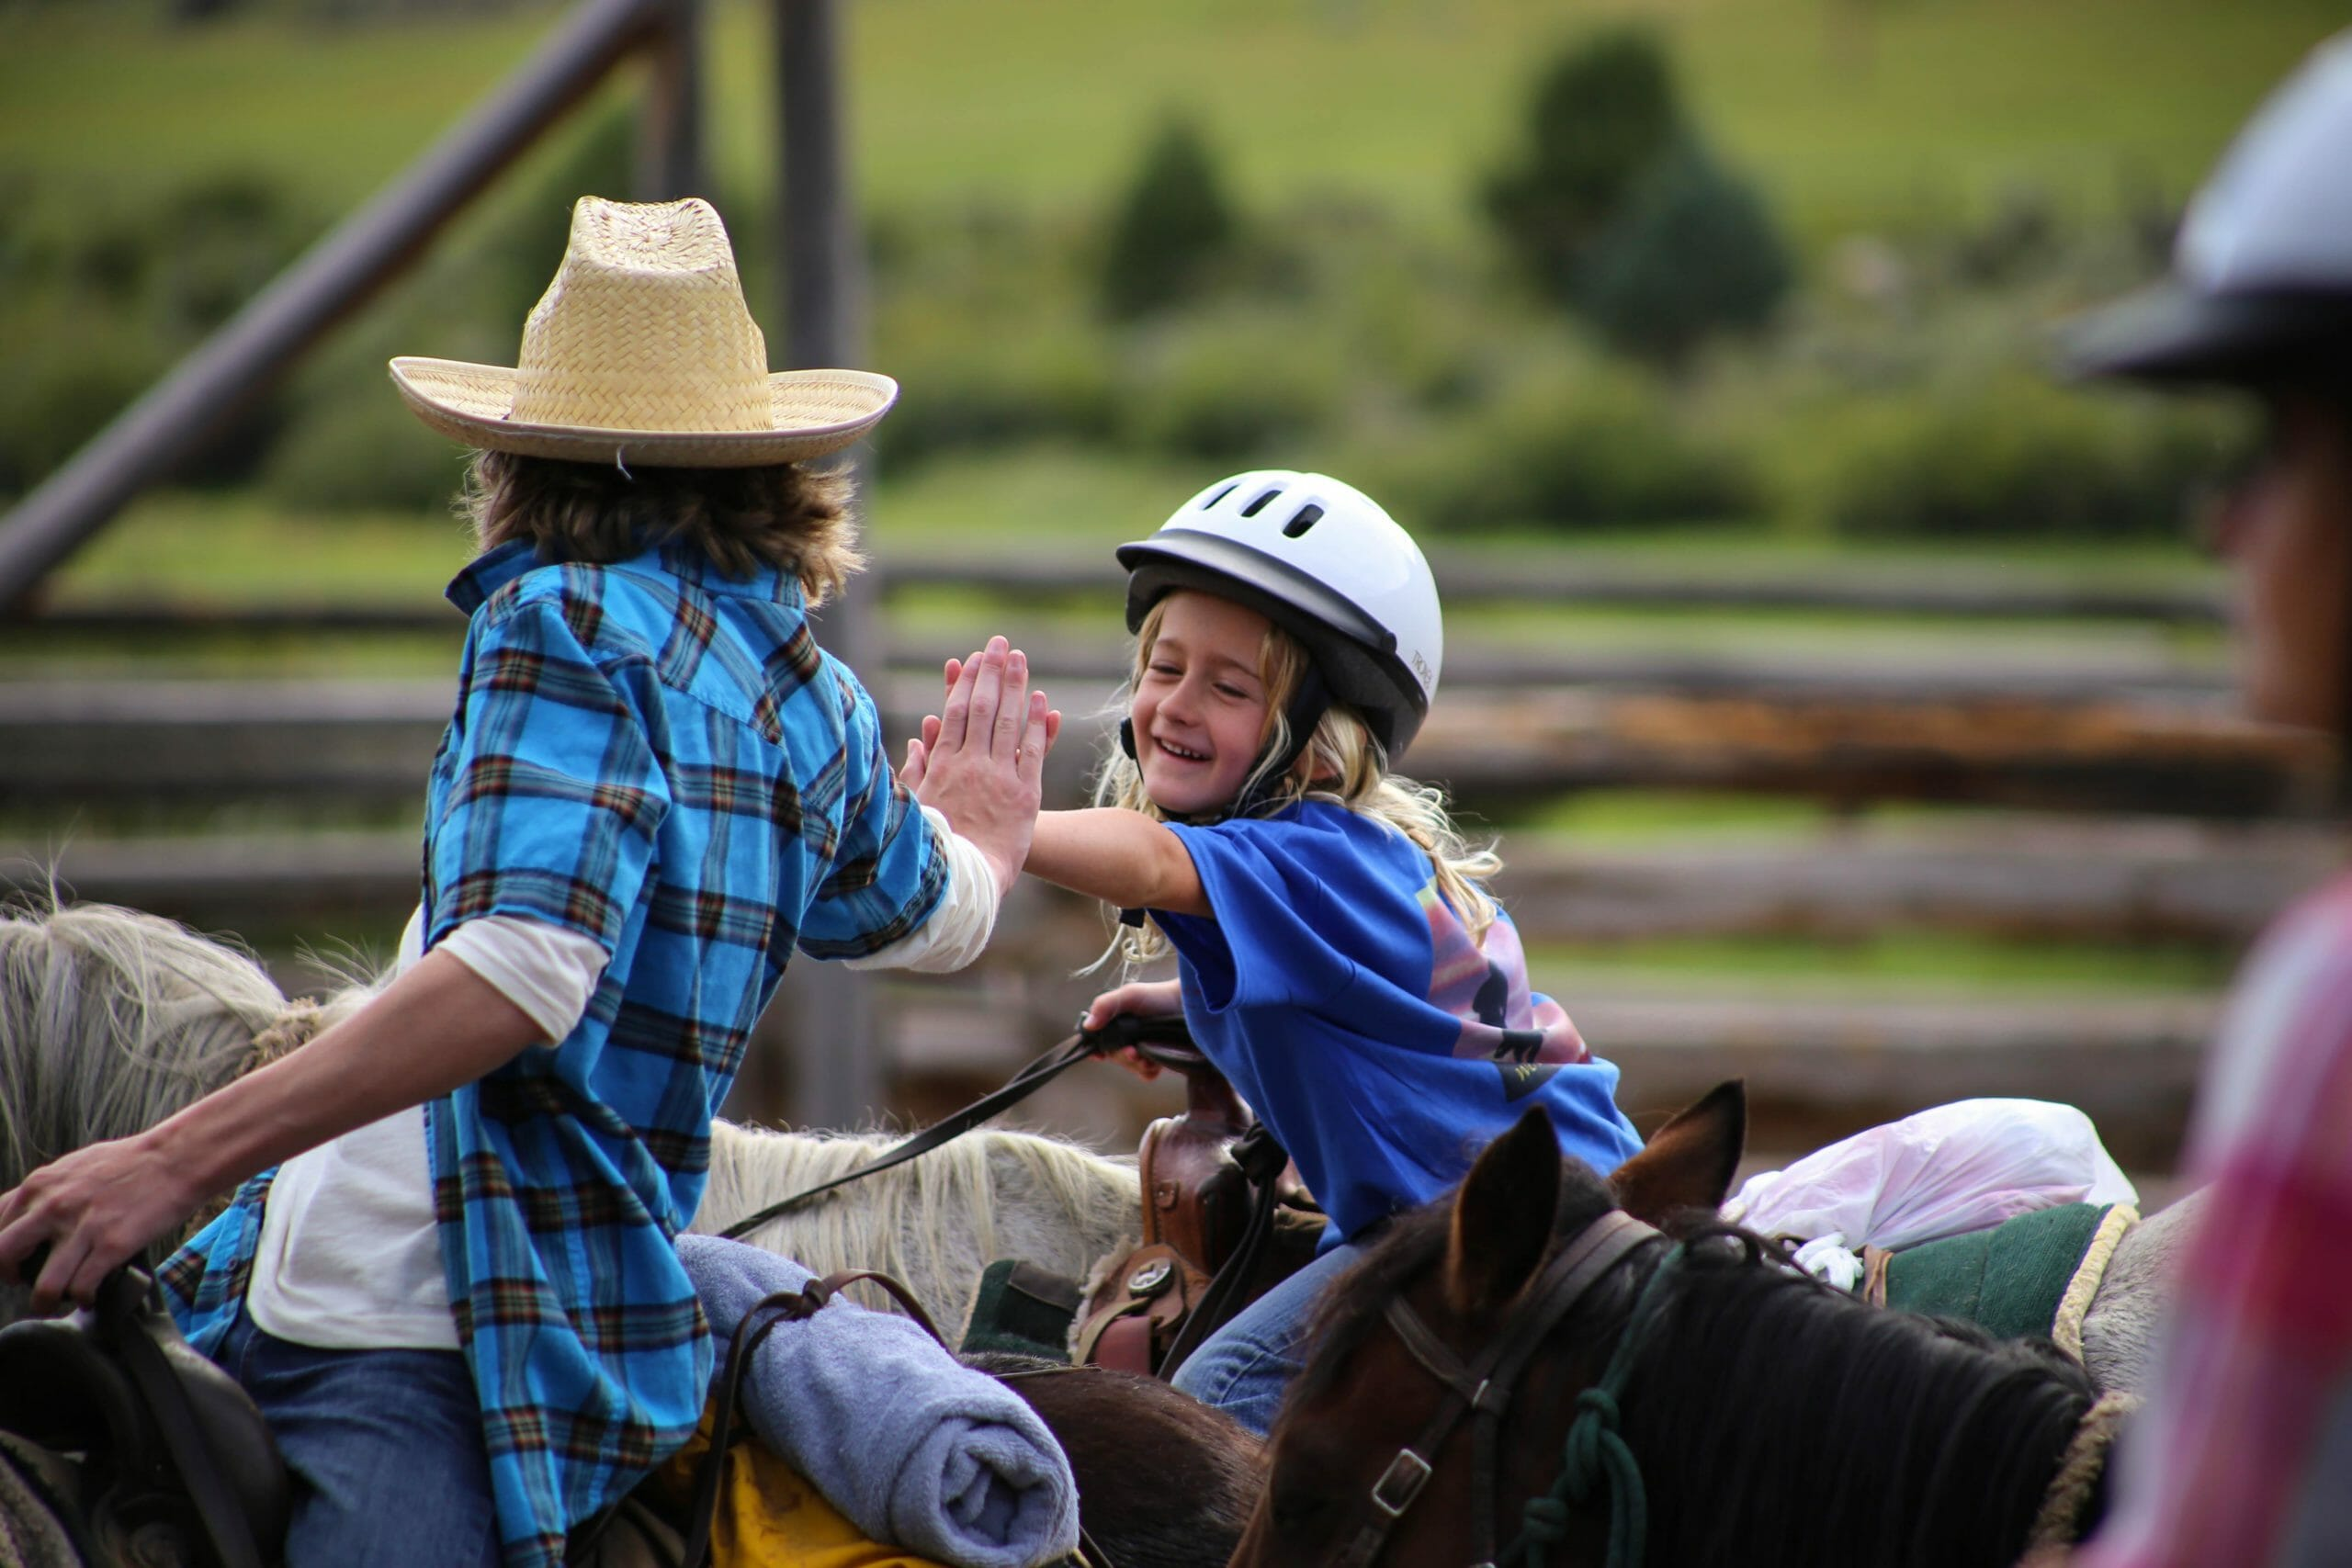 kids high fiving at a dude ranch